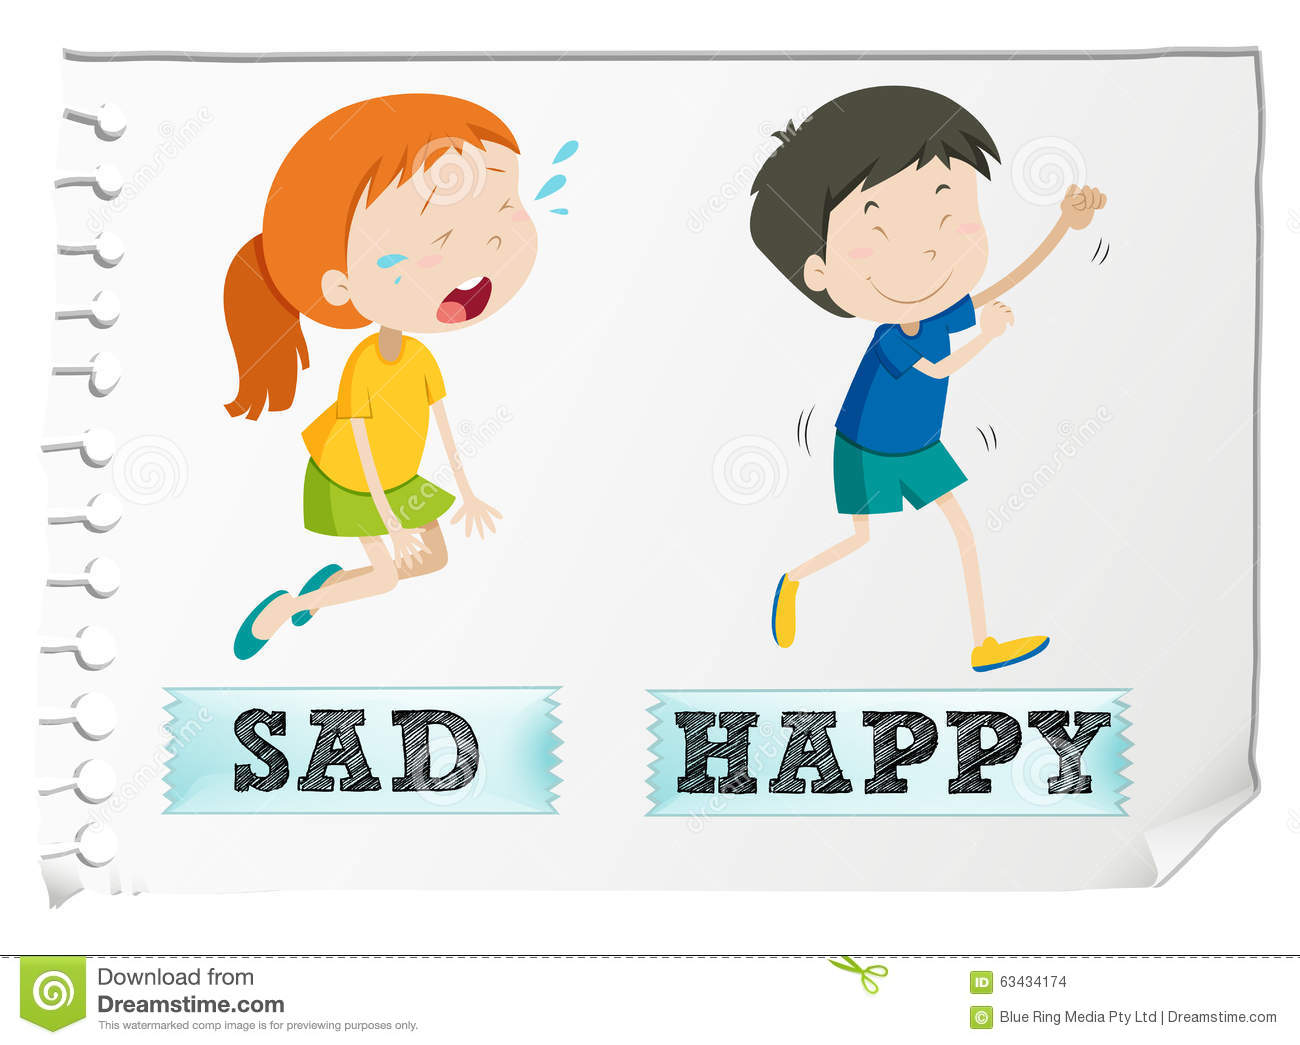 Bad Set Up Synonym Opposite Adjectives With Sad And Happy Stock Vector